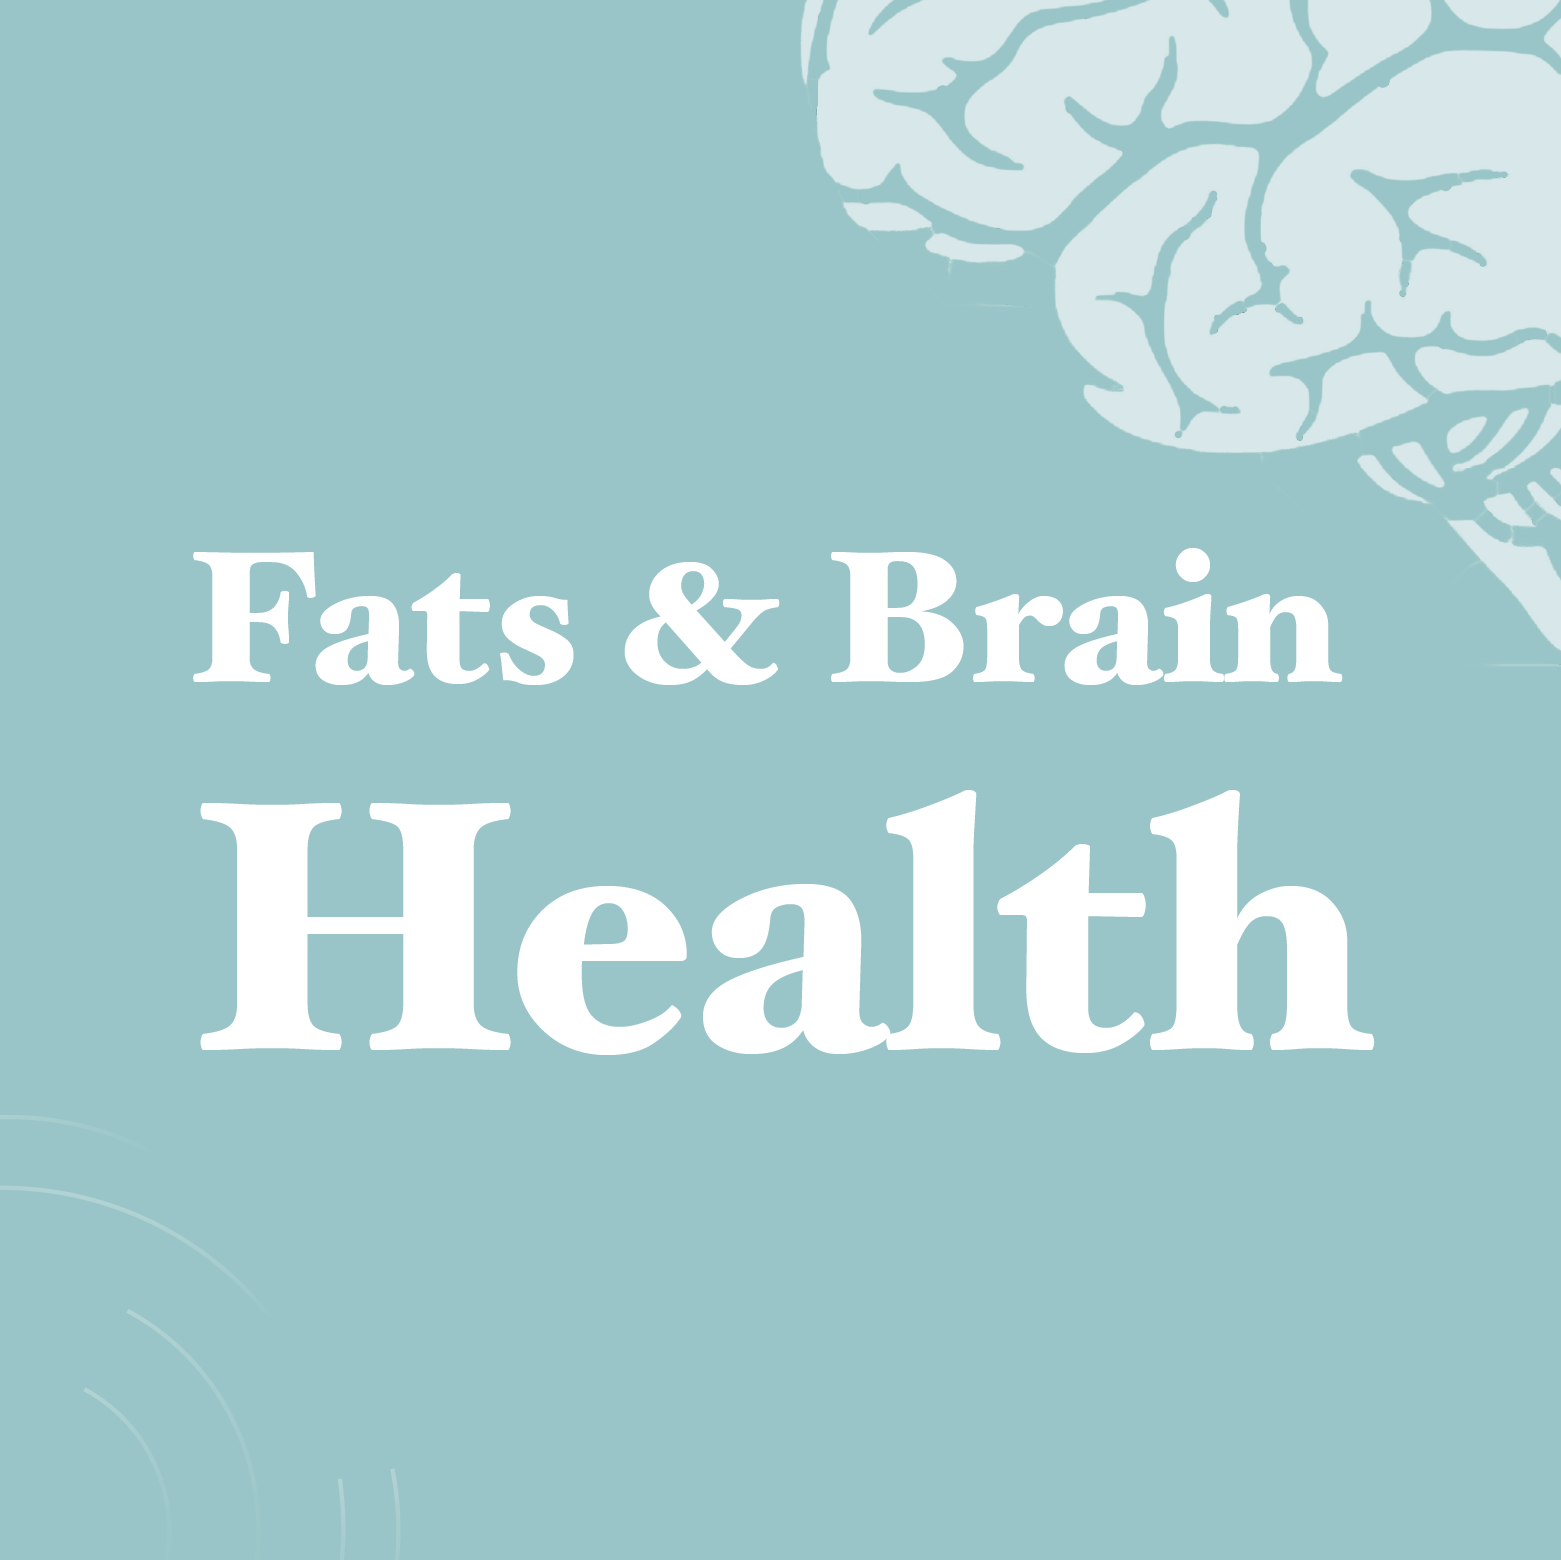 Fats and Brain Health